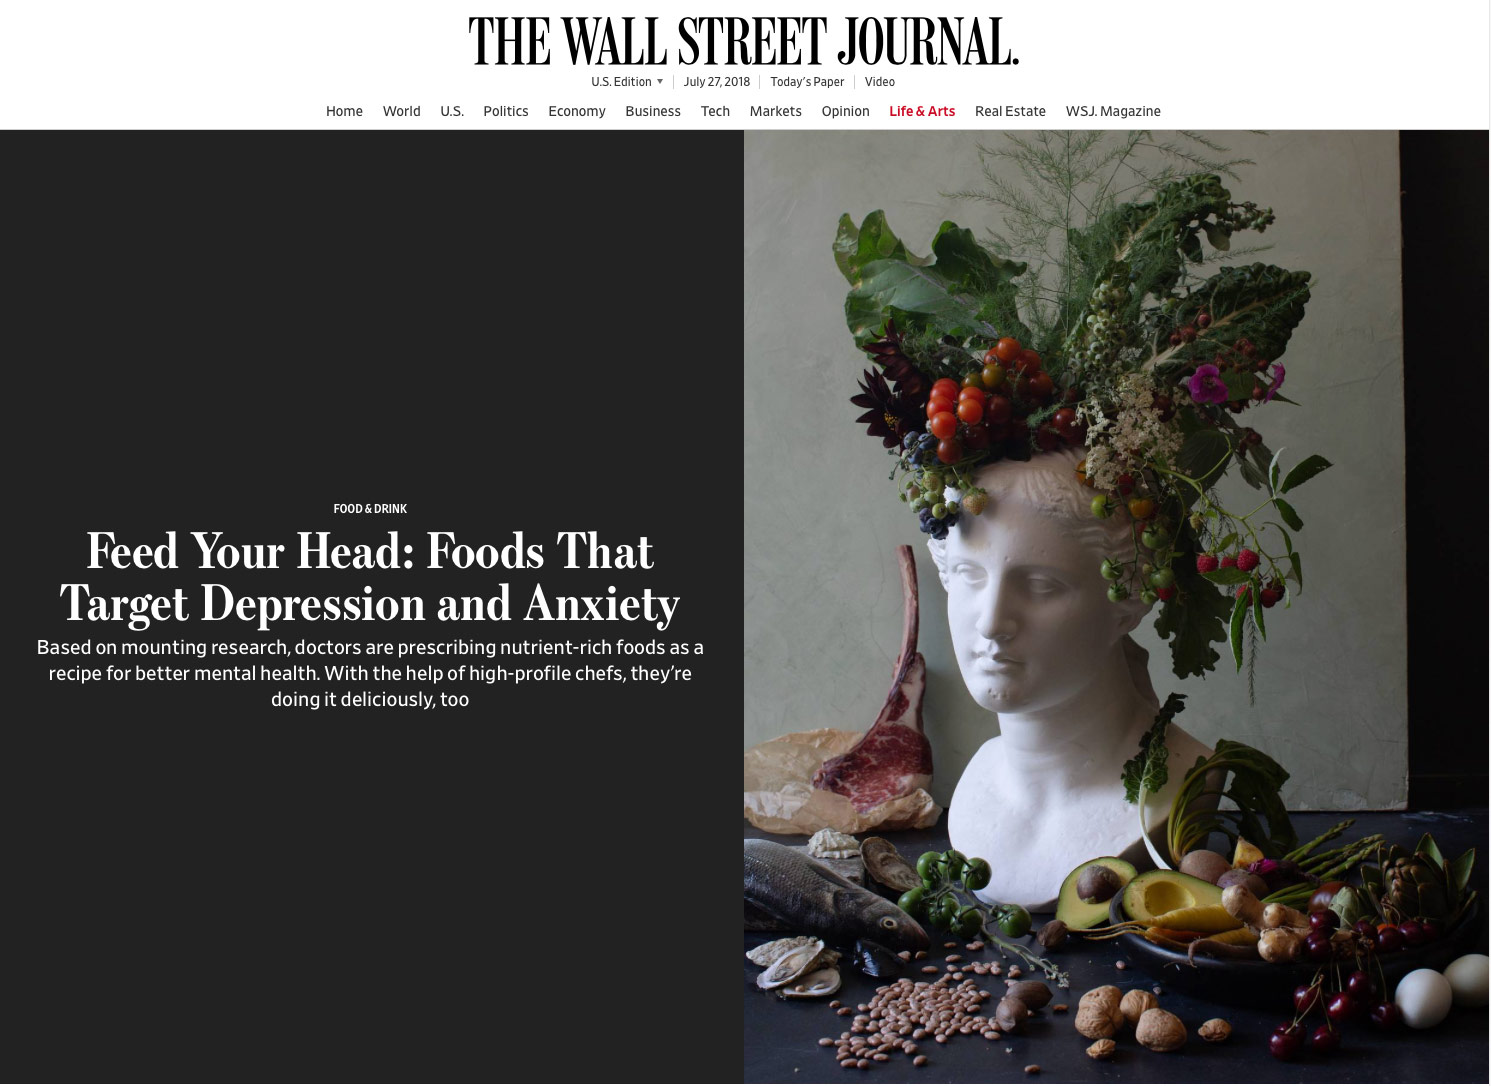 Wall Street Journal Press Clip RE: David Bouley, Dr. Uma Naidoo and Dr. Drew Ramsey